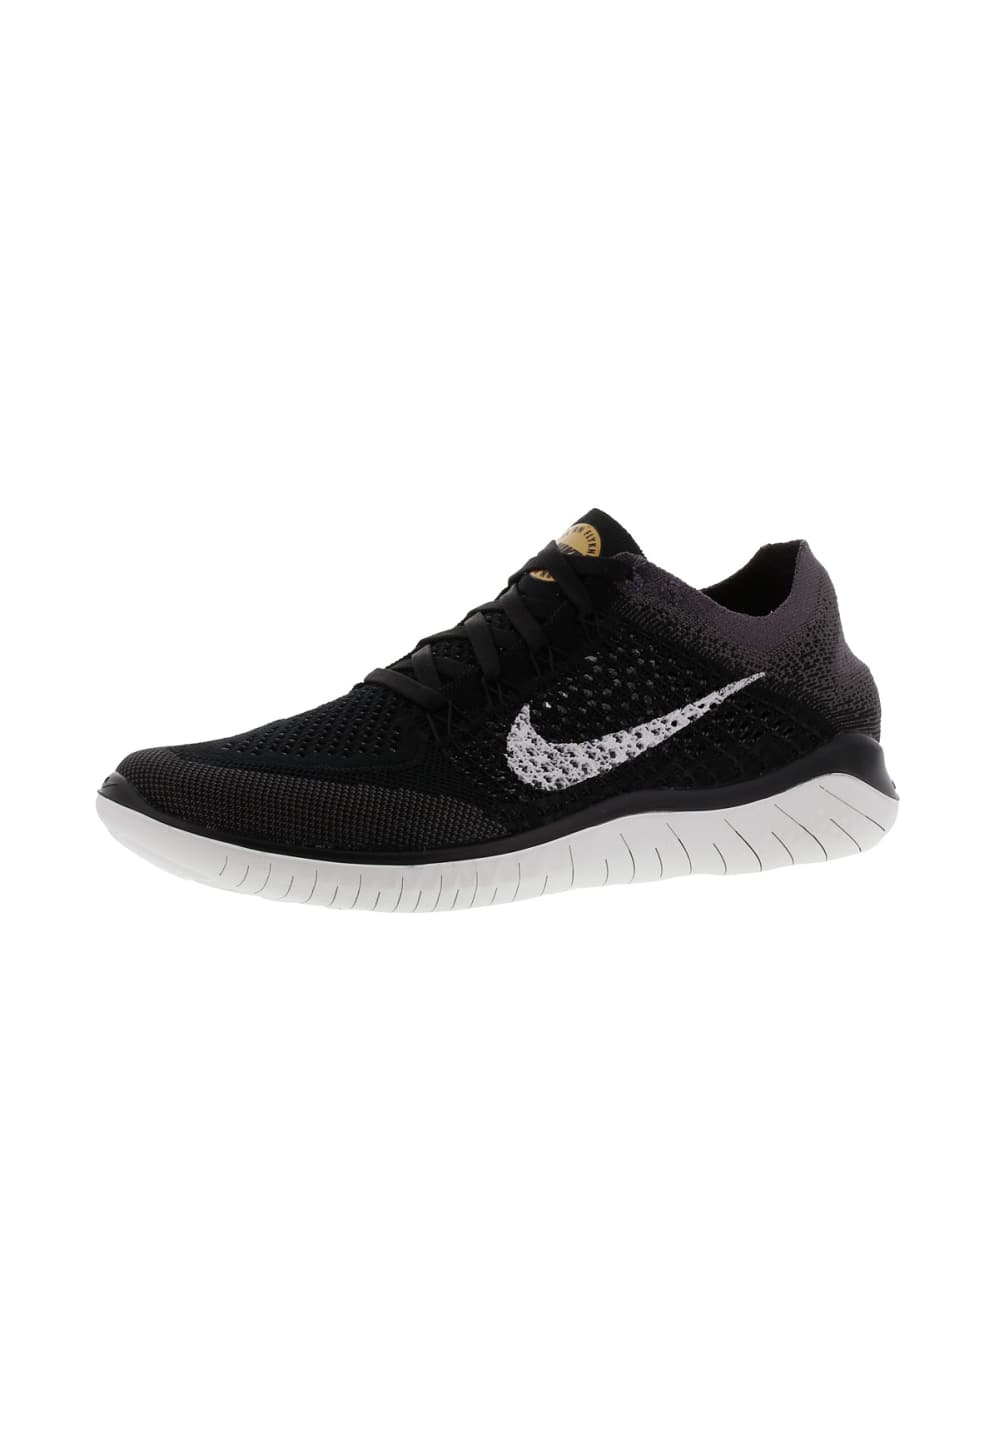 on sale f1679 85e4d Nike Free RN Flyknit 2018 - Running shoes for Women - Black